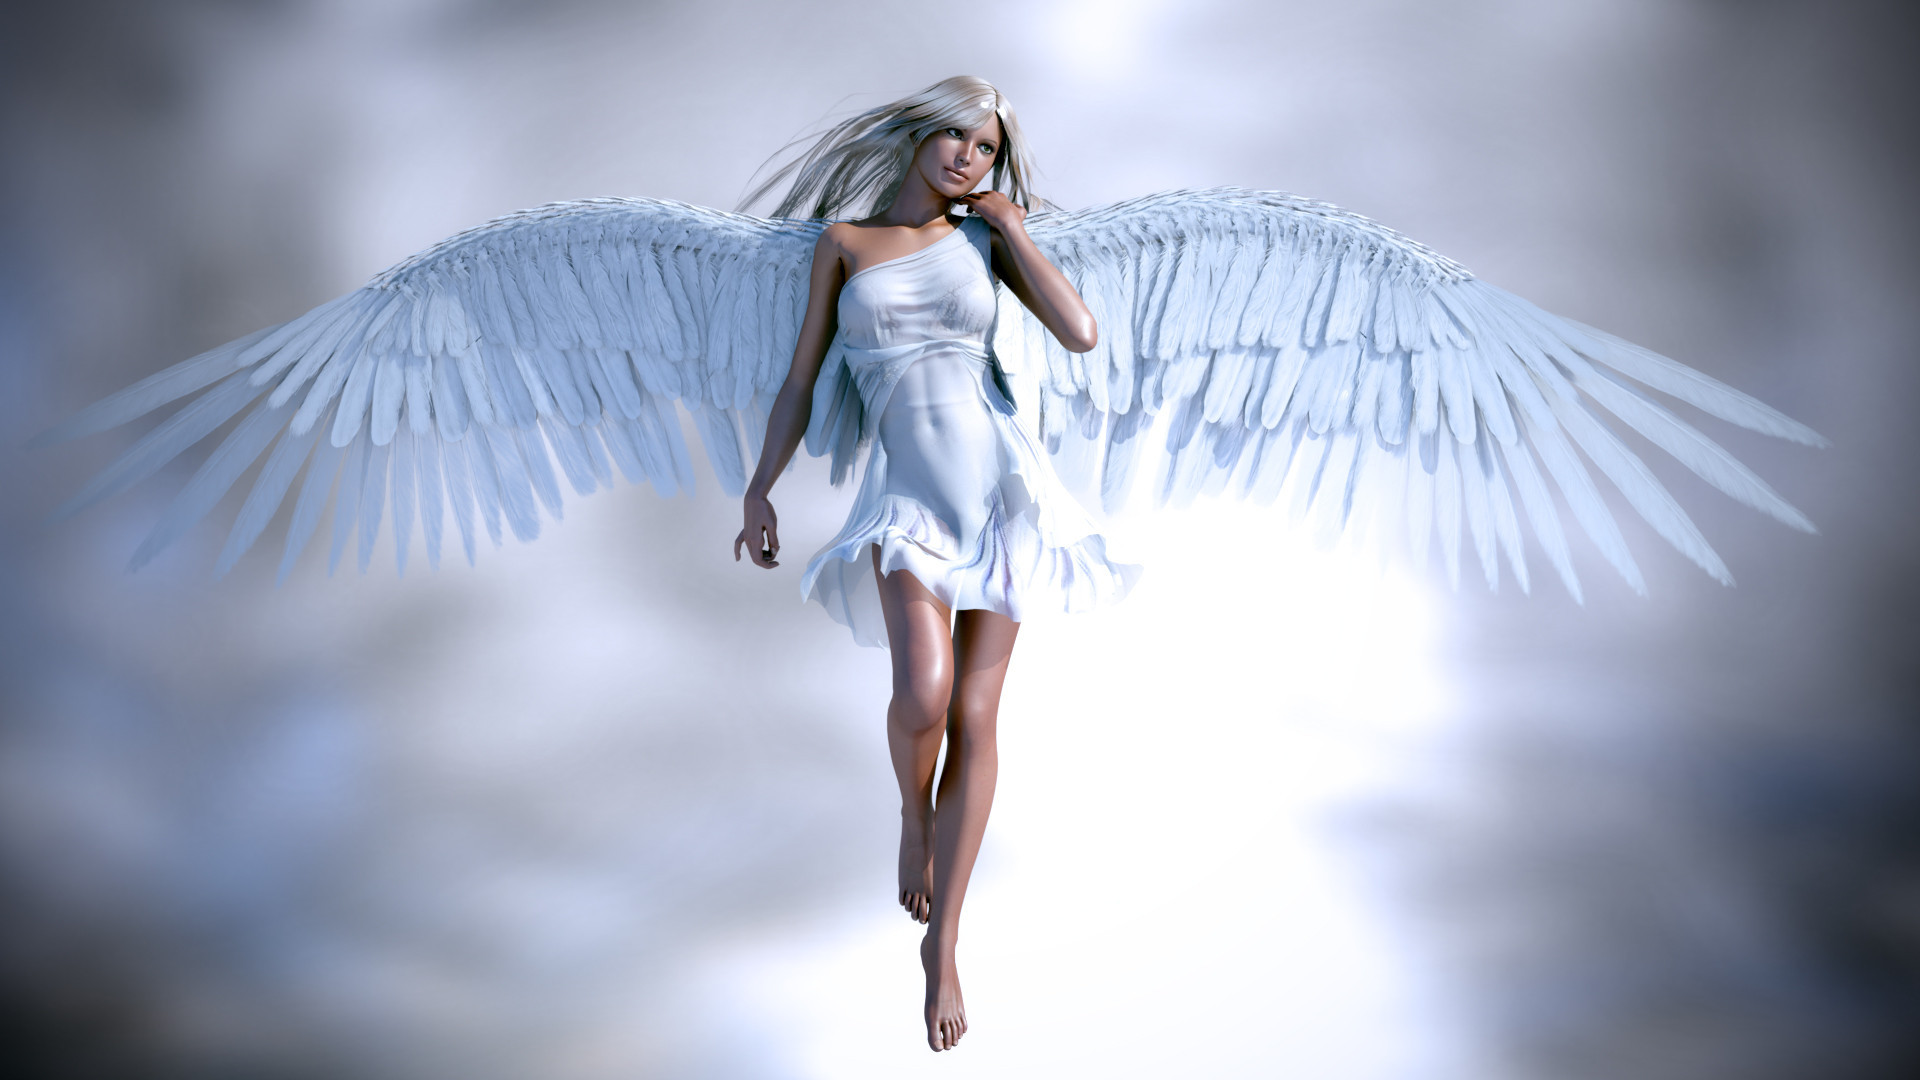 Humans born with wings